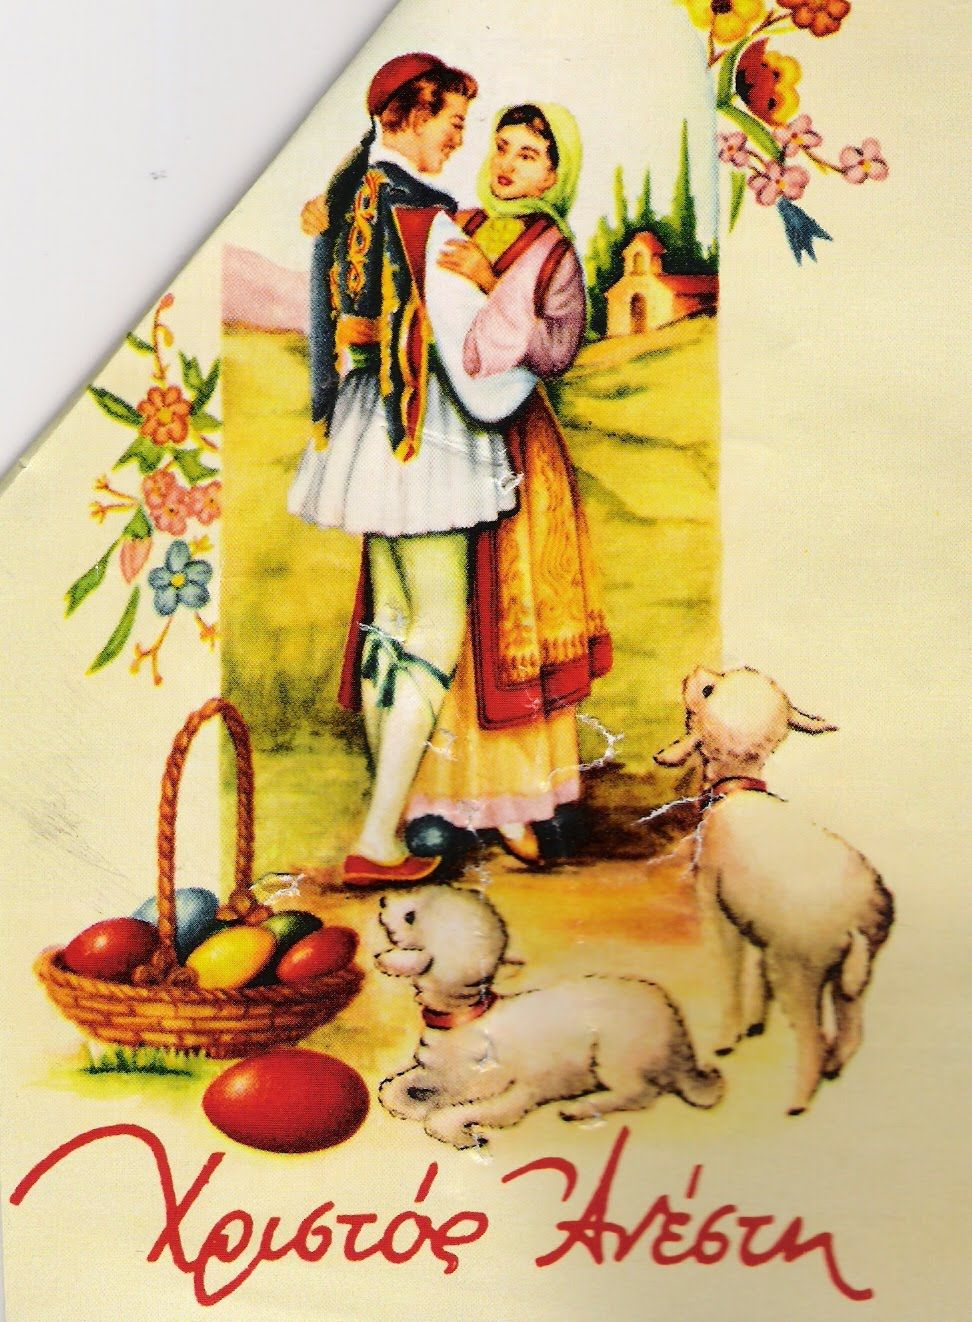 Global greek world christos anesti explore easter greeting cards greek culture and more kristyandbryce Images